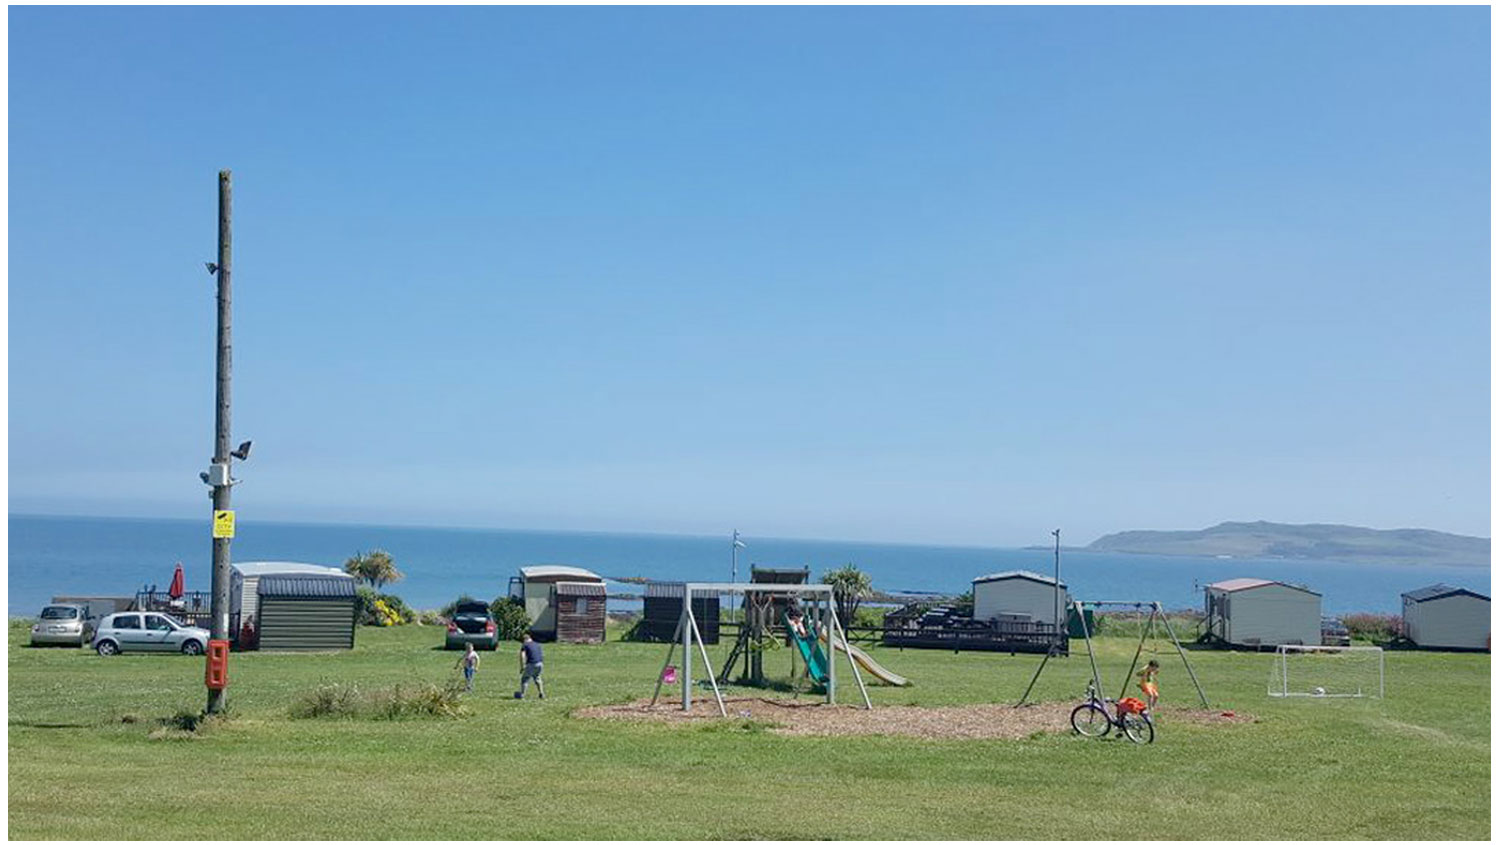 Playground-Area1-Camping-Campervans-Motorhomes-Lynders-Mobile-Home-Park-Portrane Donabate-North-County-Dublin-Fingal